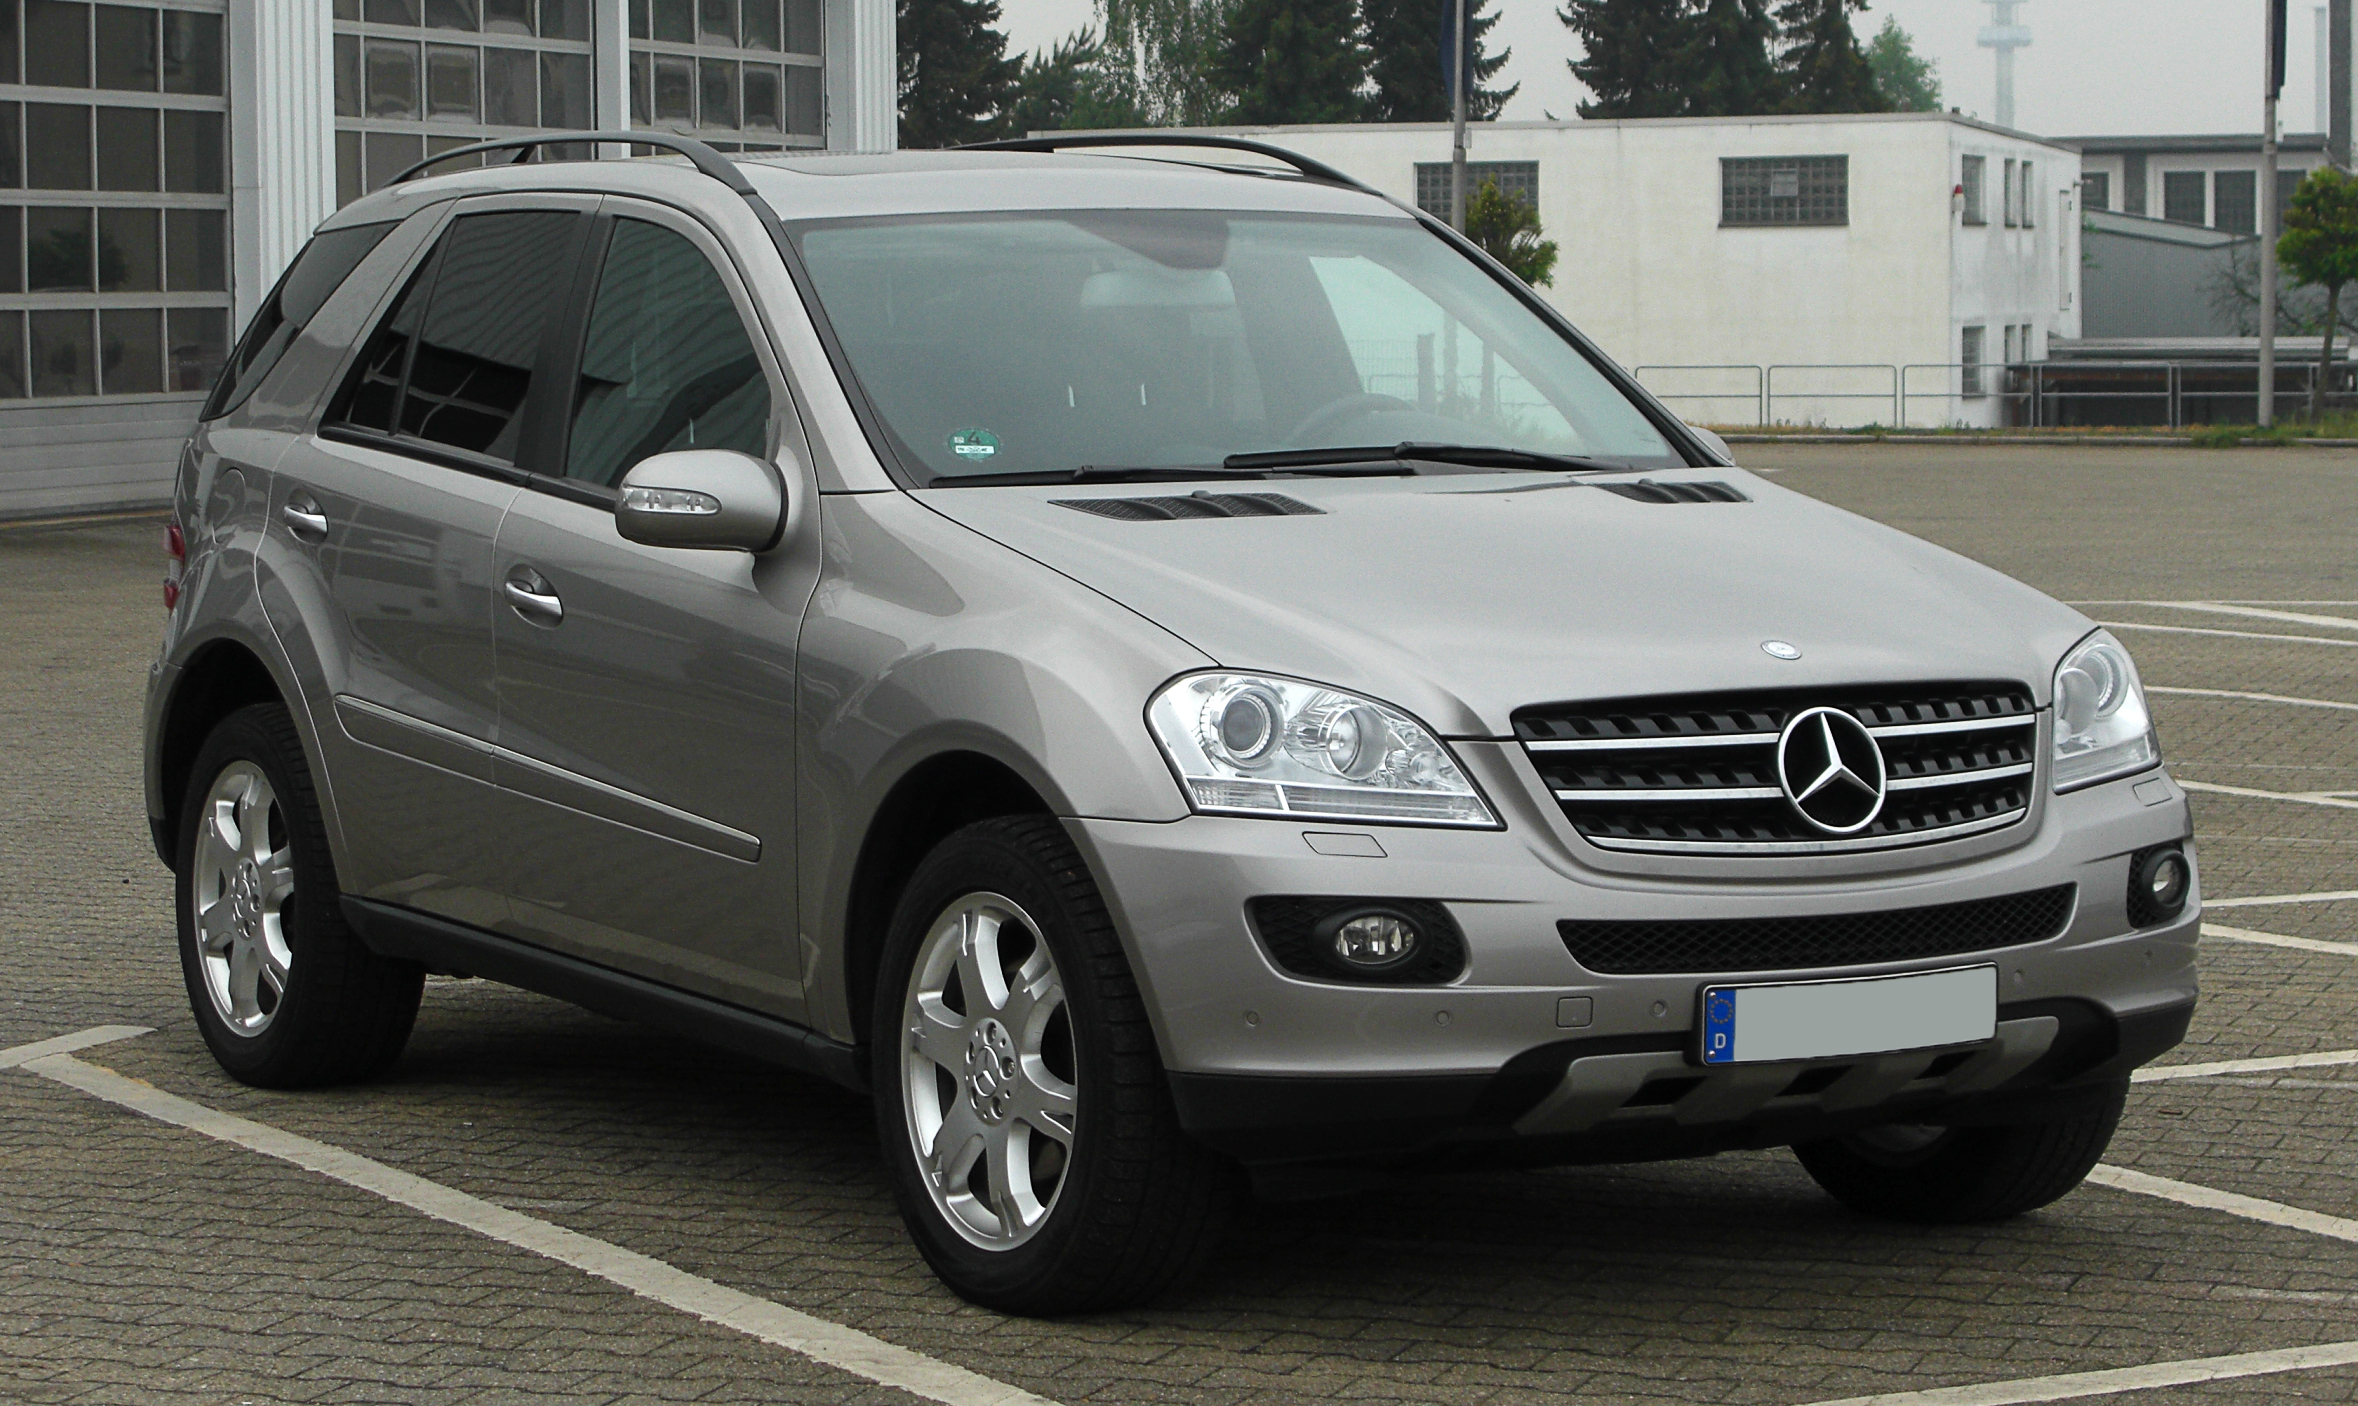 mercedes ml320 w164 manual enthusiast wiring diagrams u2022 rh rasalibre co Service Manuals mercedes x164 repair manual